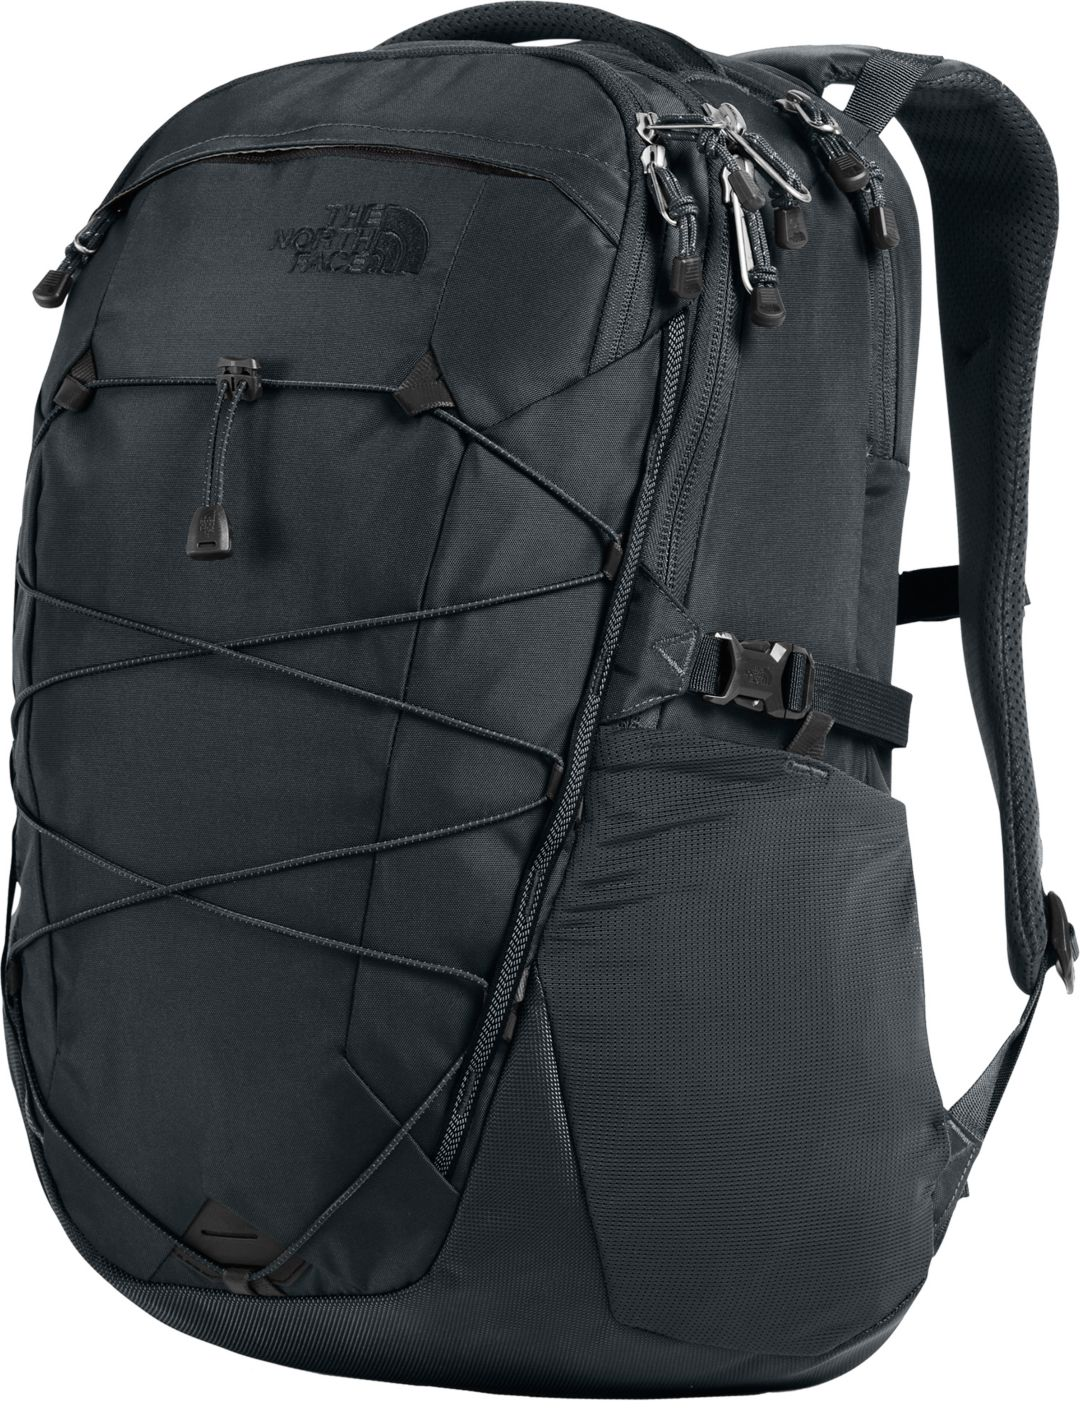 af79a06c7 The North Face Men's Borealis 18 Backpack